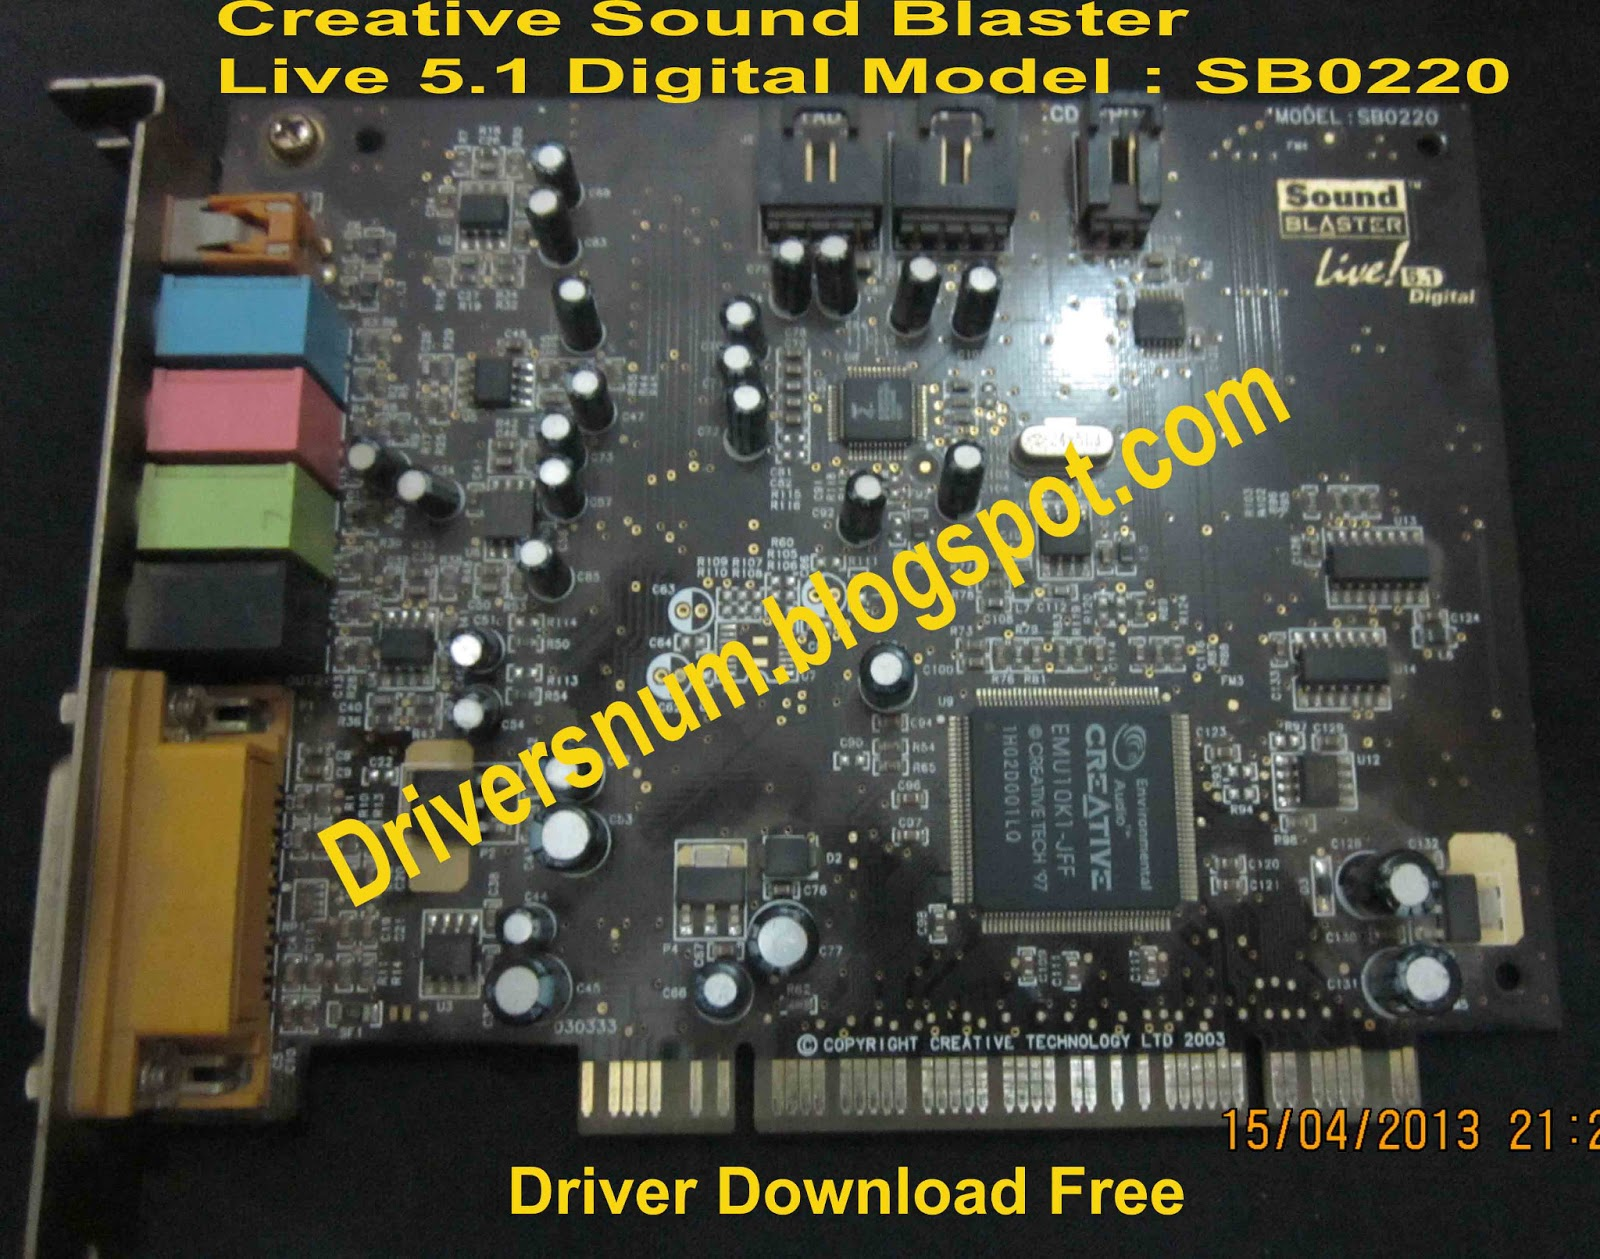 Download CREATIVE Sound Card drivers for Windows - Page 17